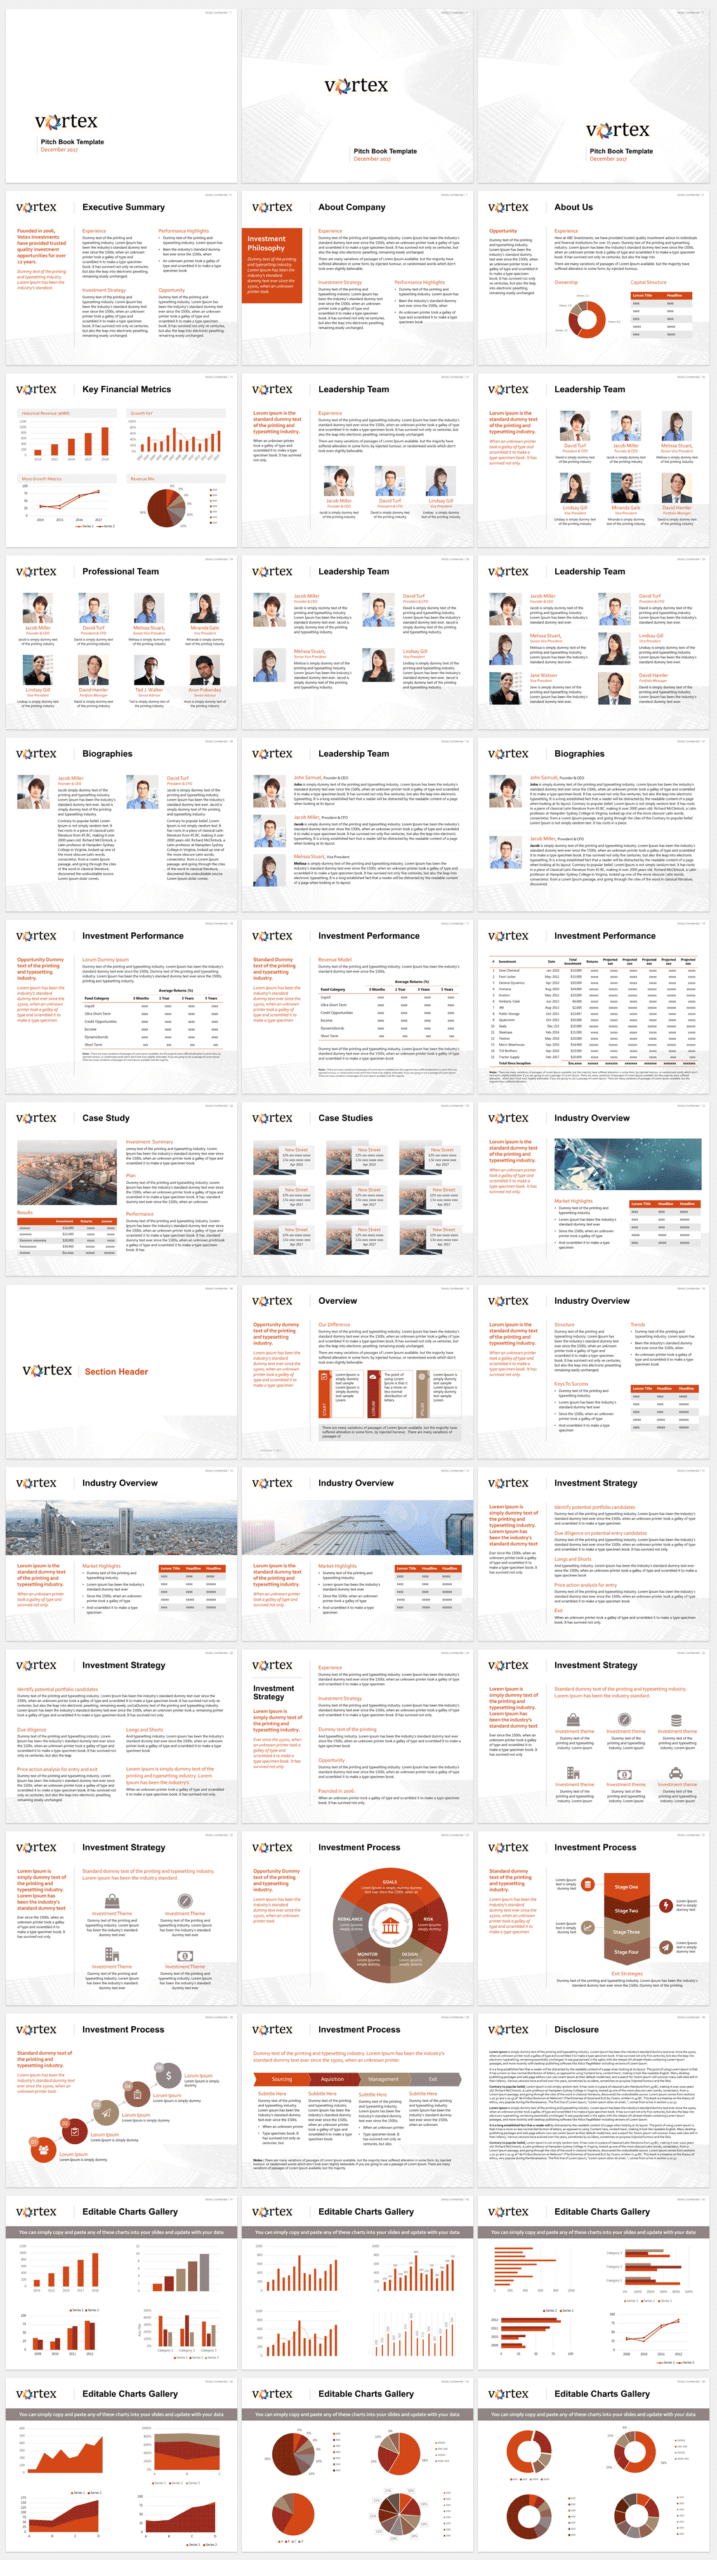 Pitch Book Template Example For Investment Banking Pitch Pertaining To Powerpoint Pitch Book Template